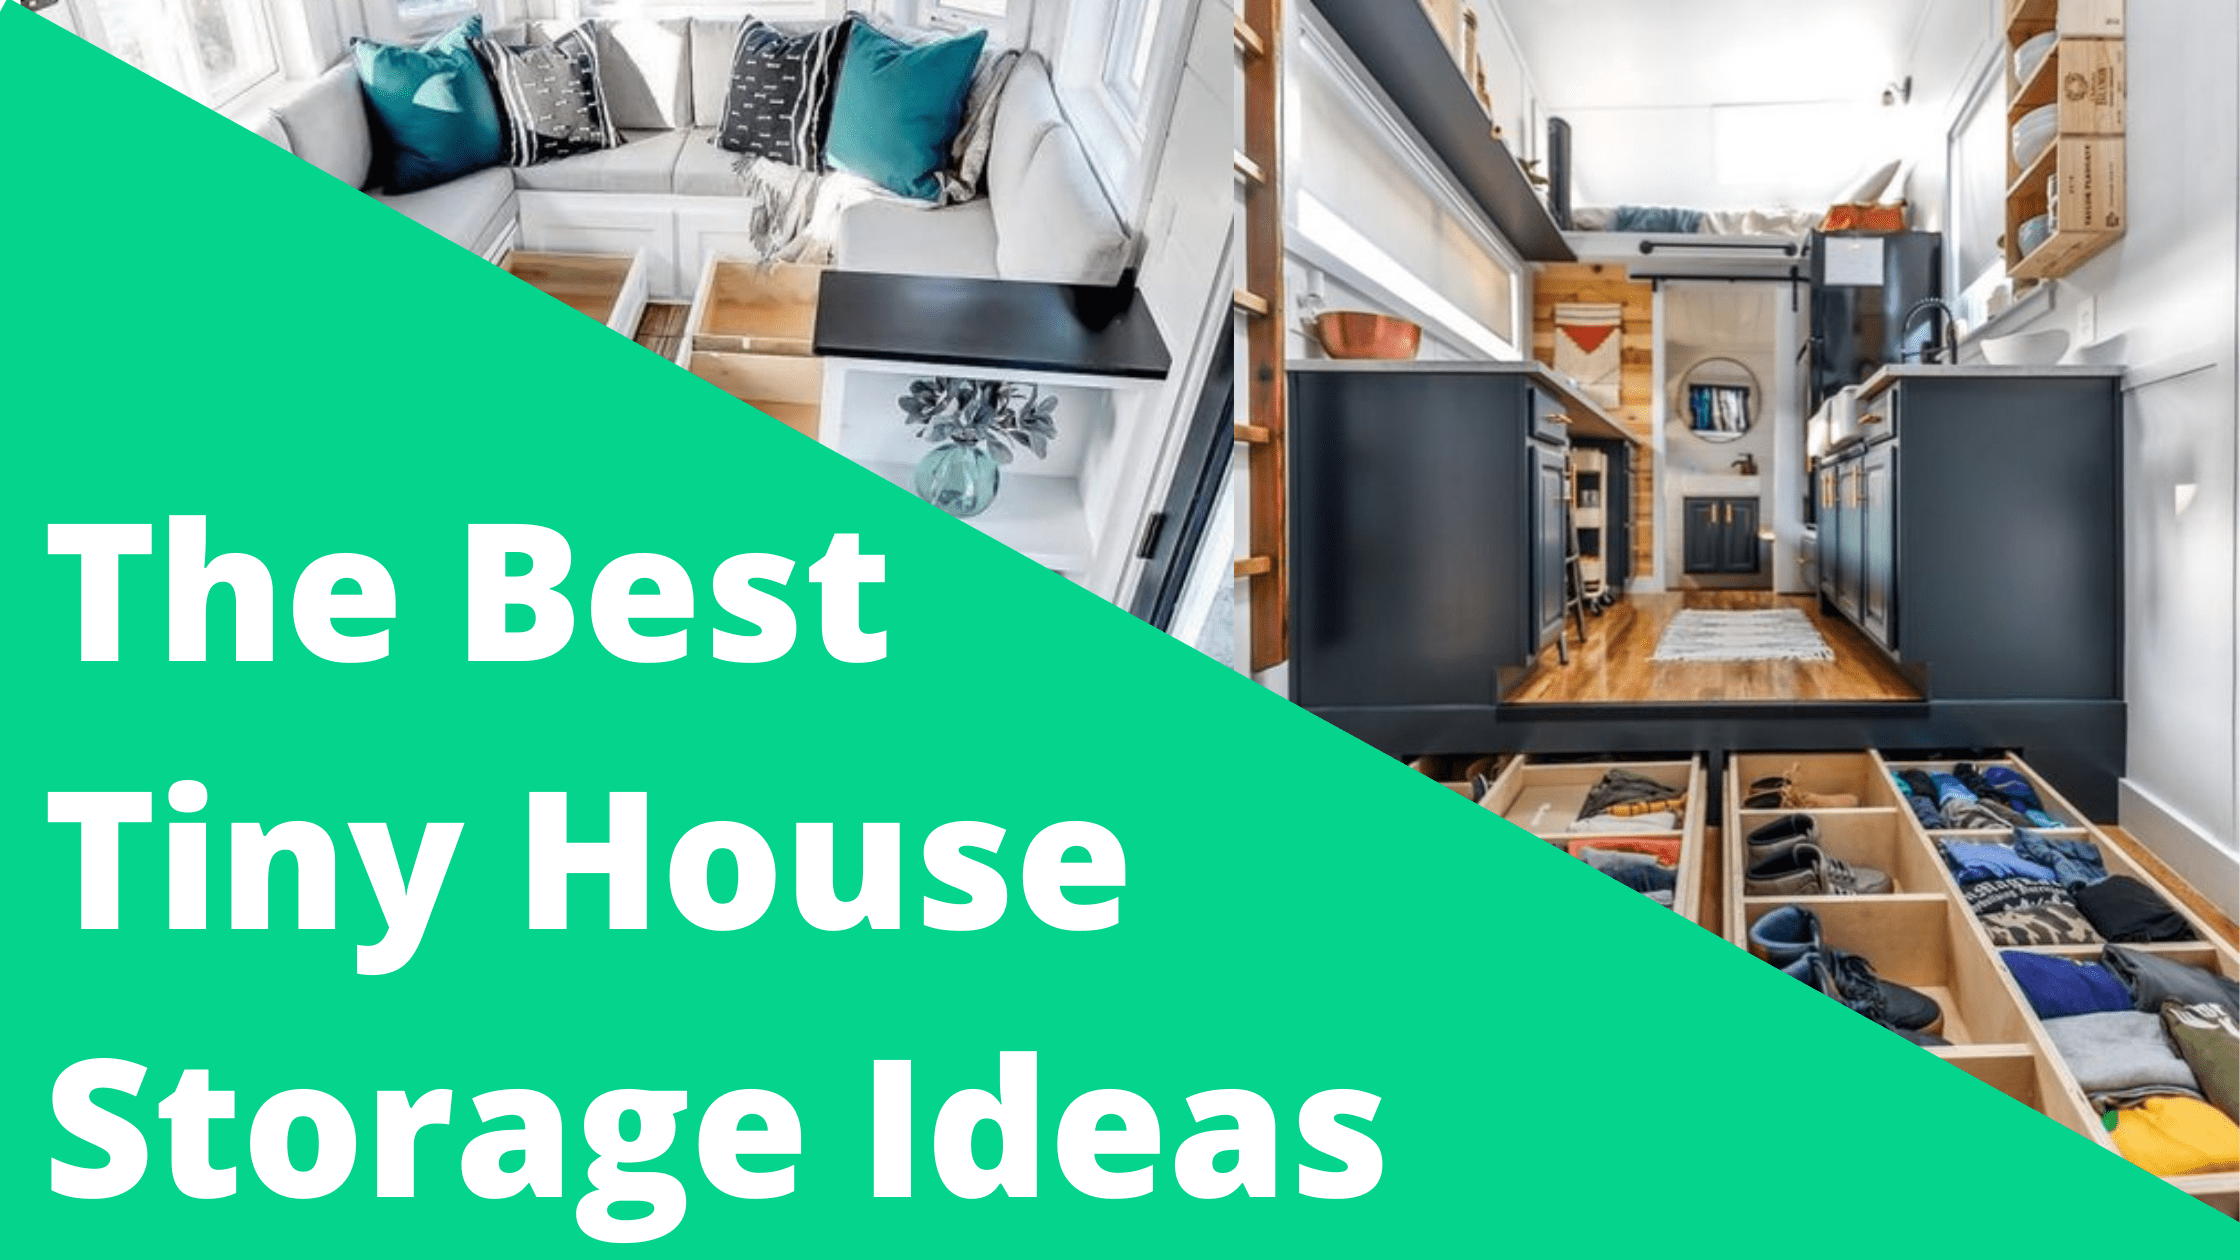 Tiny House Storage Ideas